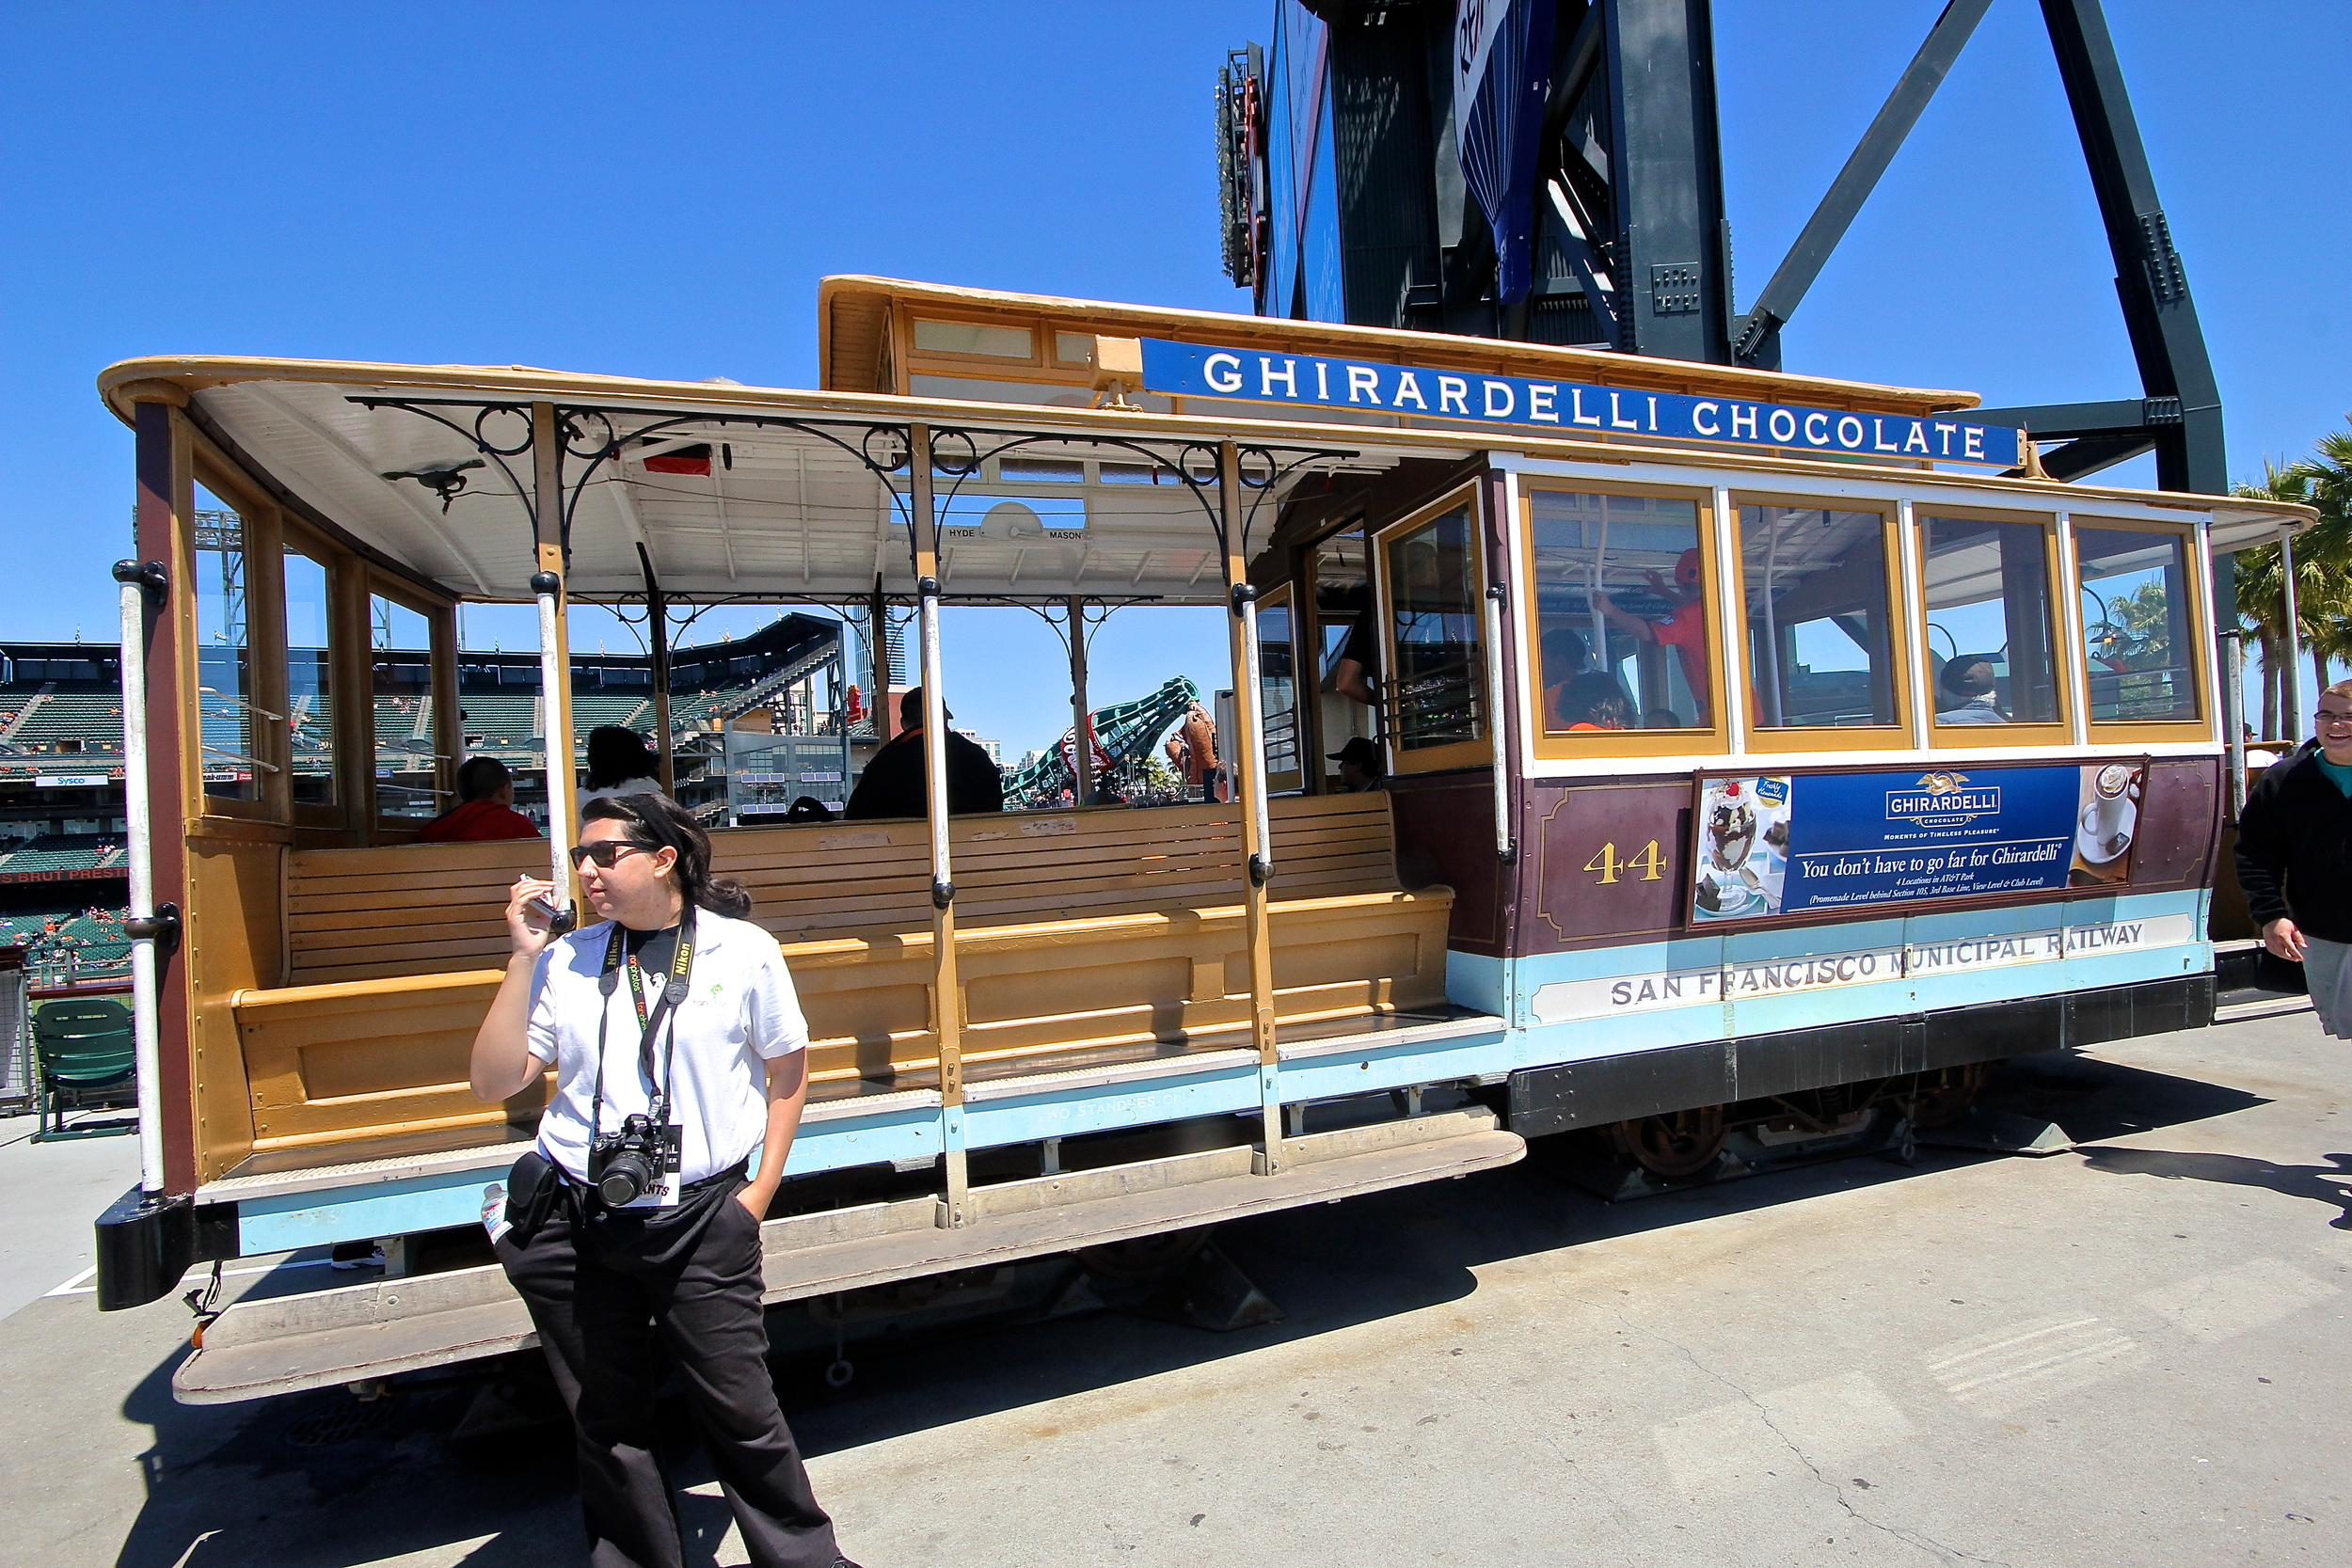 Cable car on the concourse